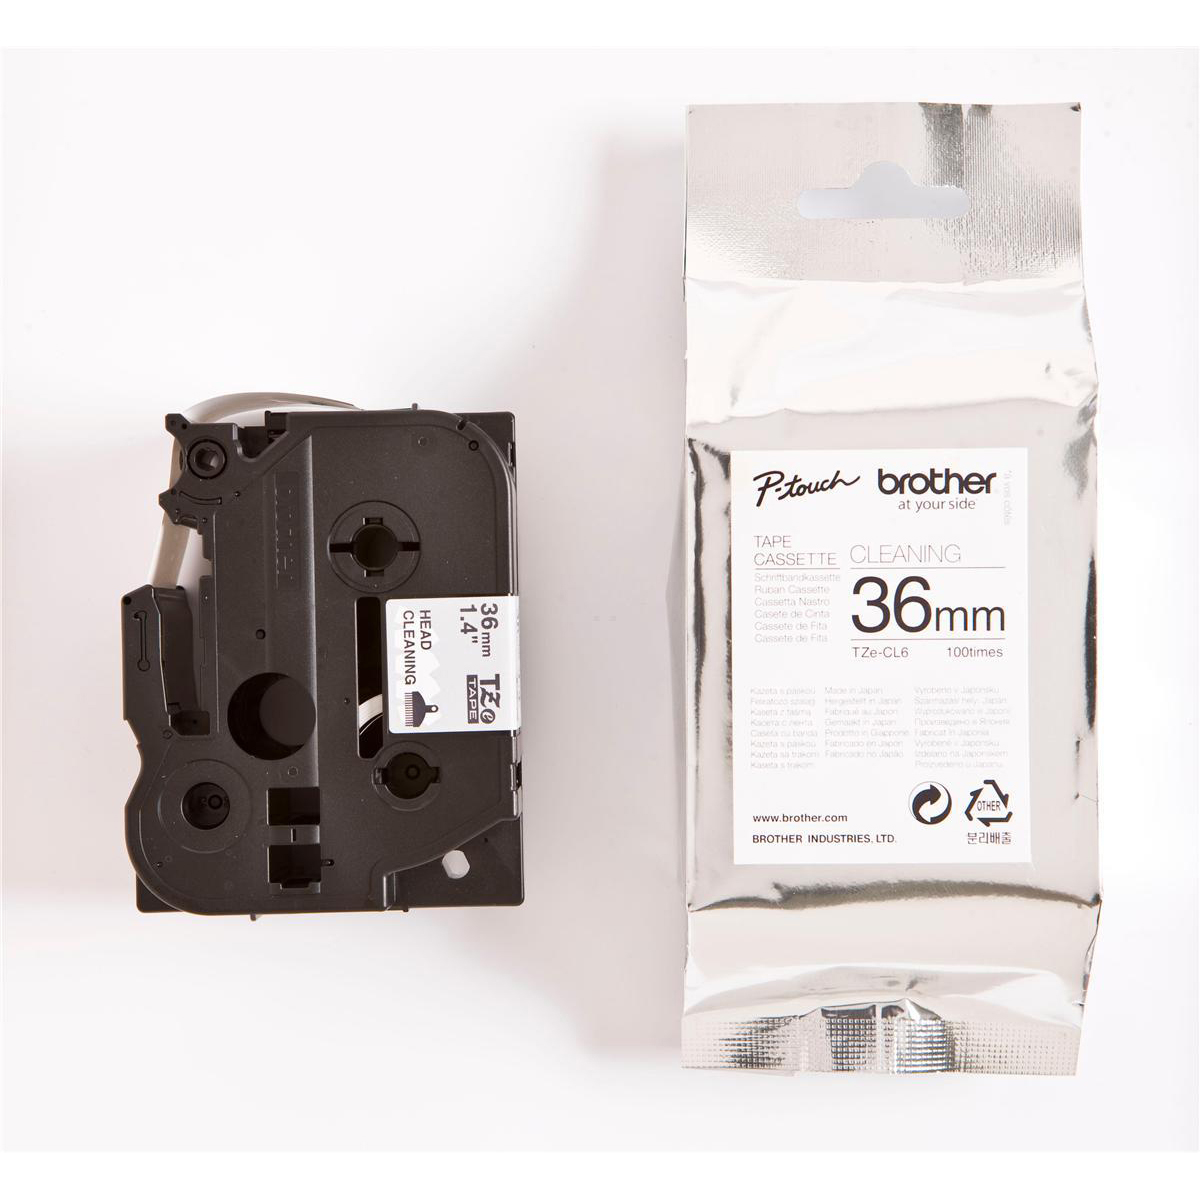 Original Brother TZeCL6 Printhead Cleaning Tape Cassette 36mm wide (Tze-CL6)